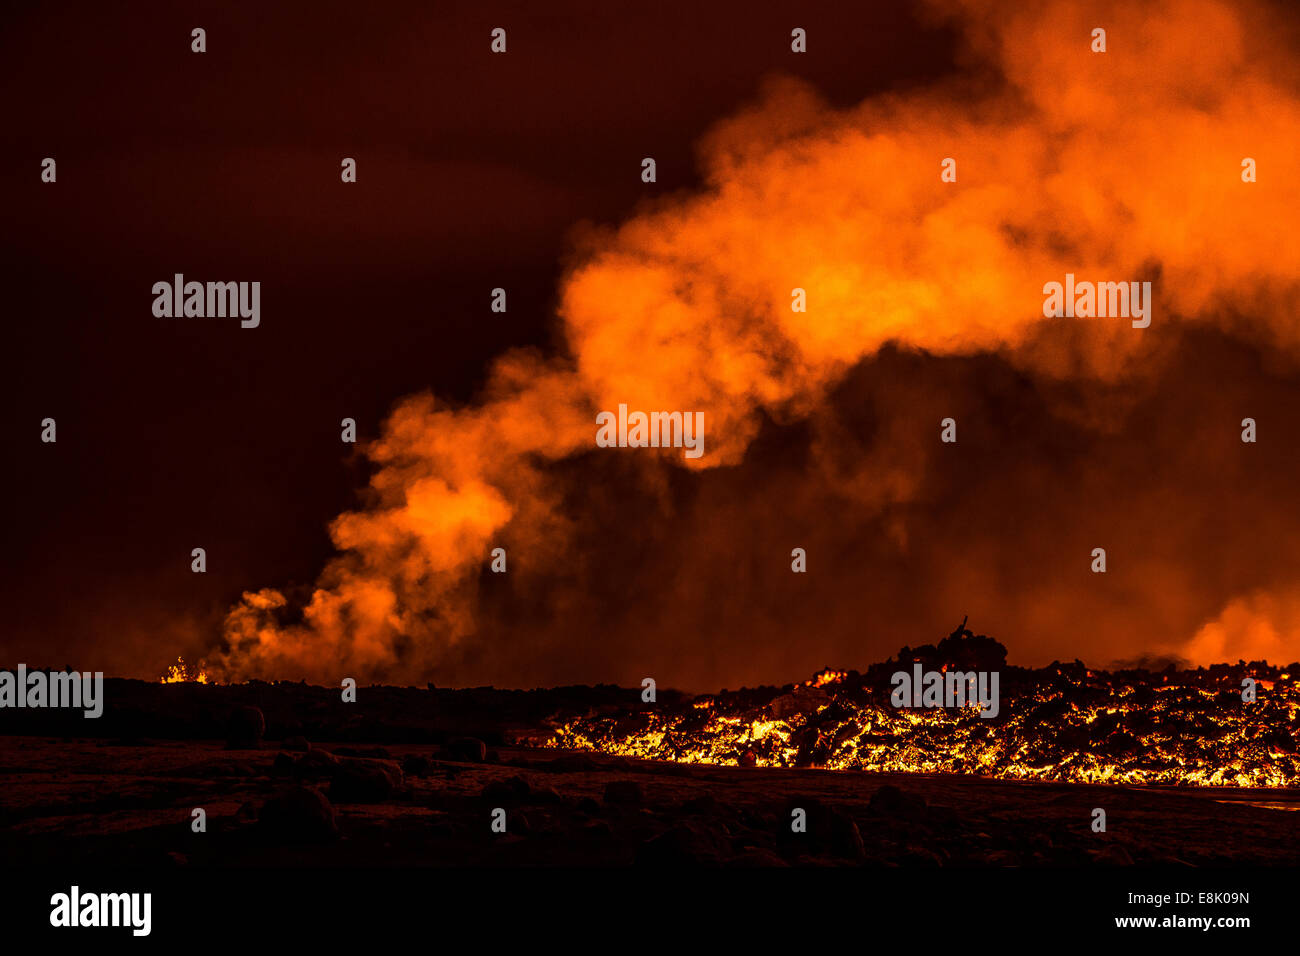 Lava fountains at night, eruption at the Holuhraun Fissure, near the Bardarbunga Volcano, Iceland. - Stock Image